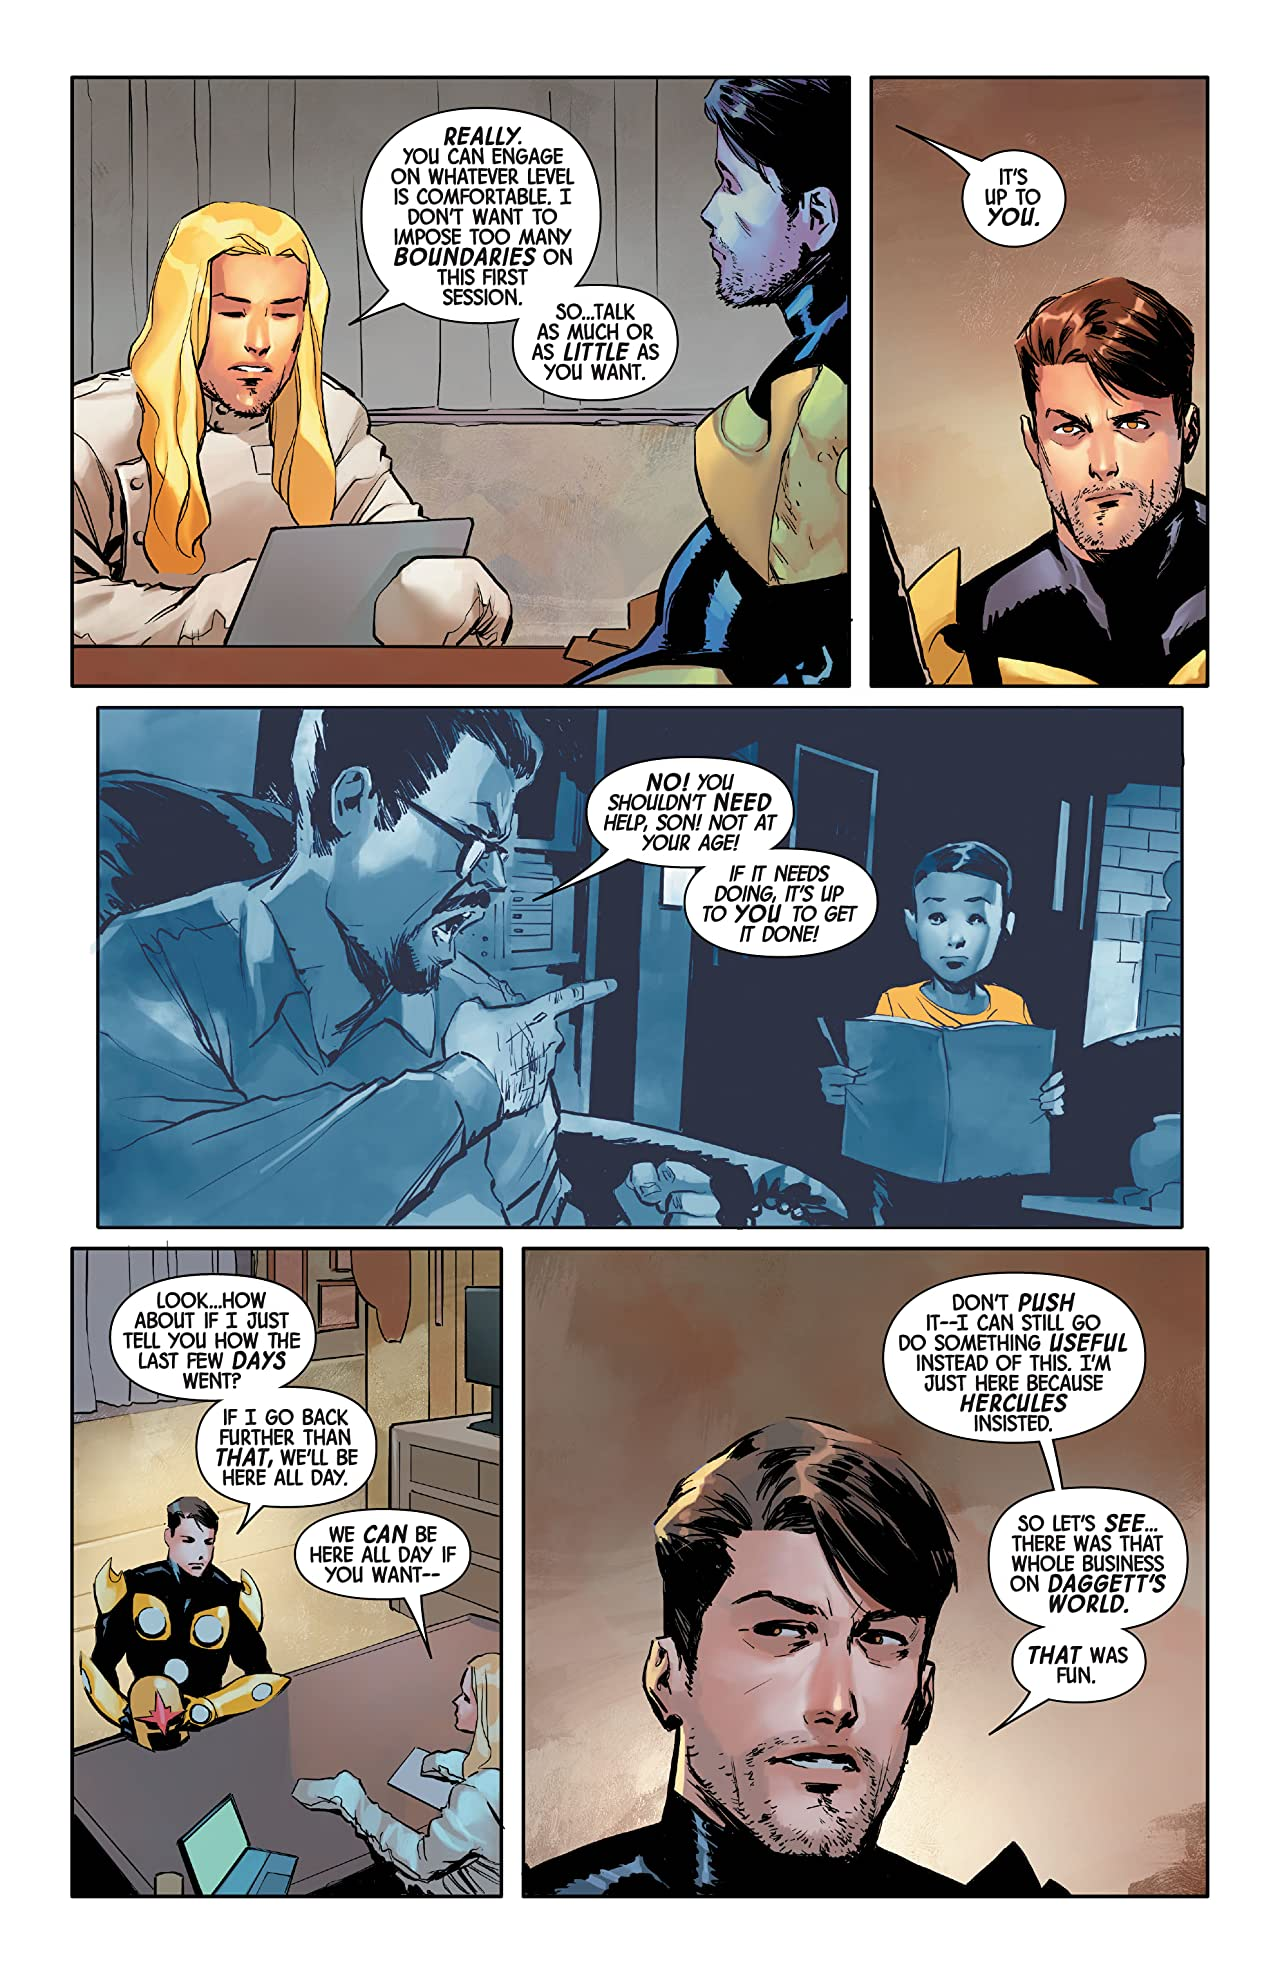 Guardians Of The Galaxy by Al Ewing Vol. 2: Here We Make Our Stand